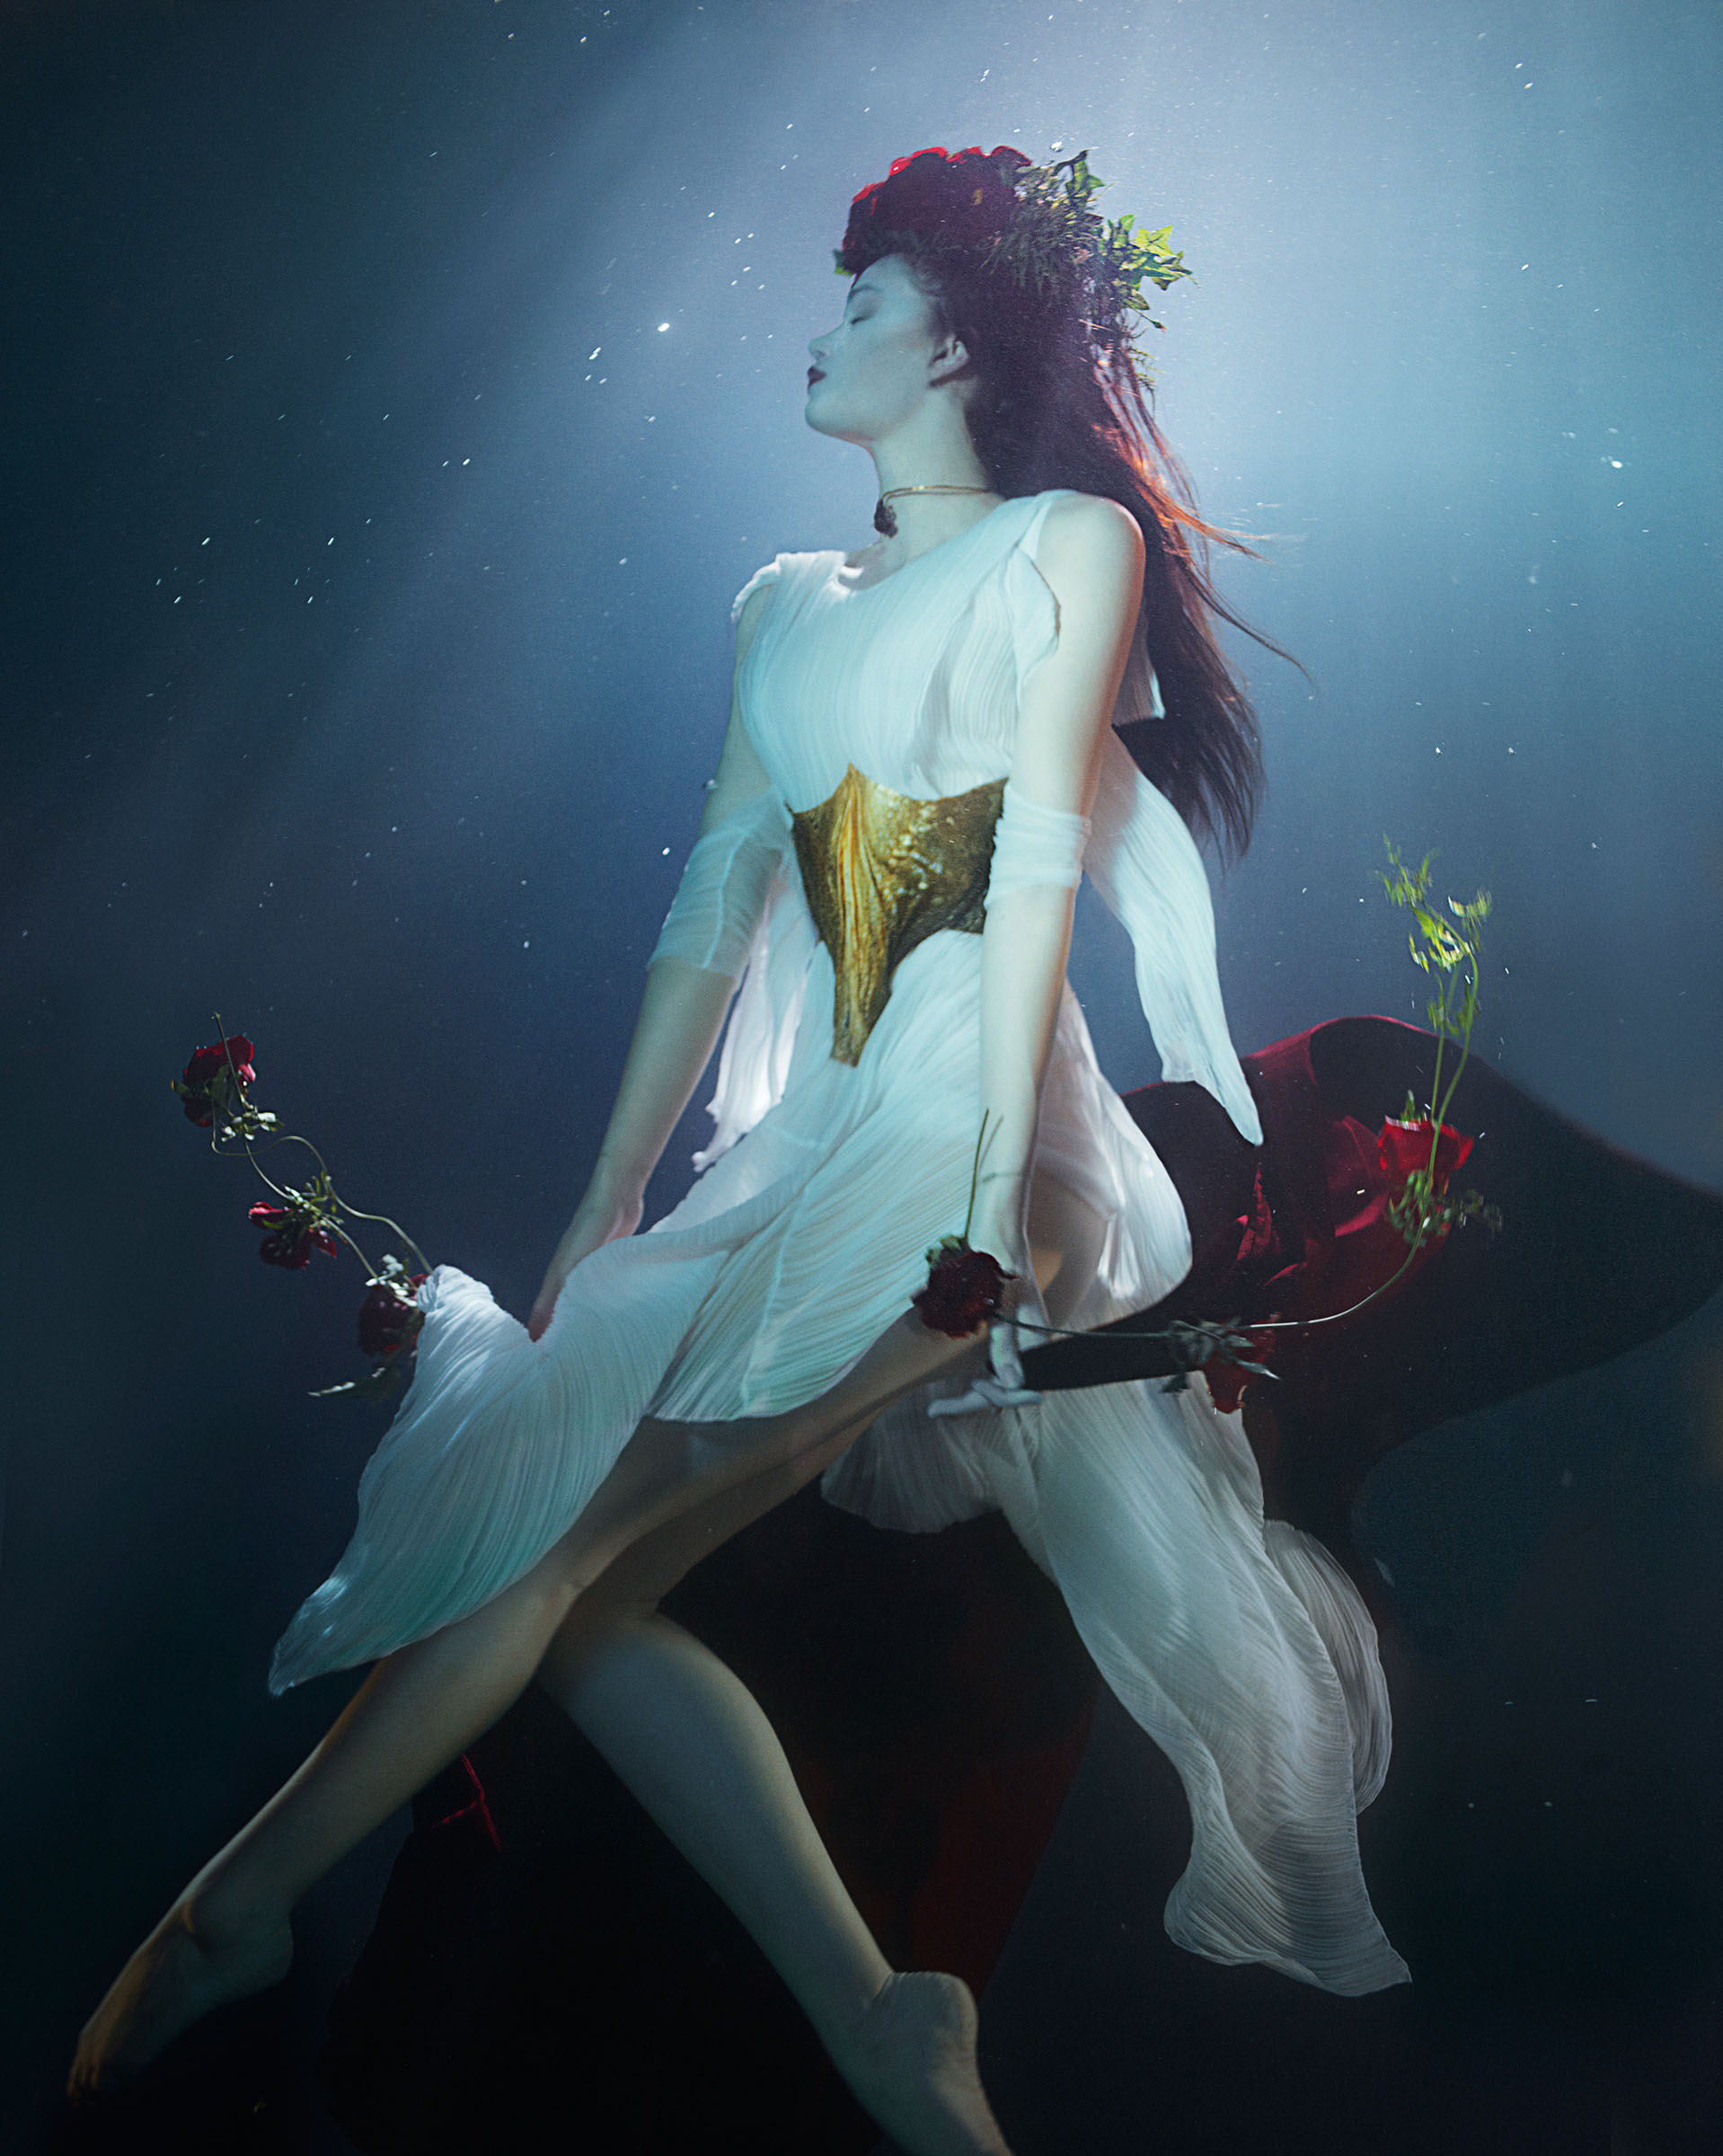 lydia-beesley-franziska-klein-by-zena-holloway-for-how-to-spend-it-may-2014-4